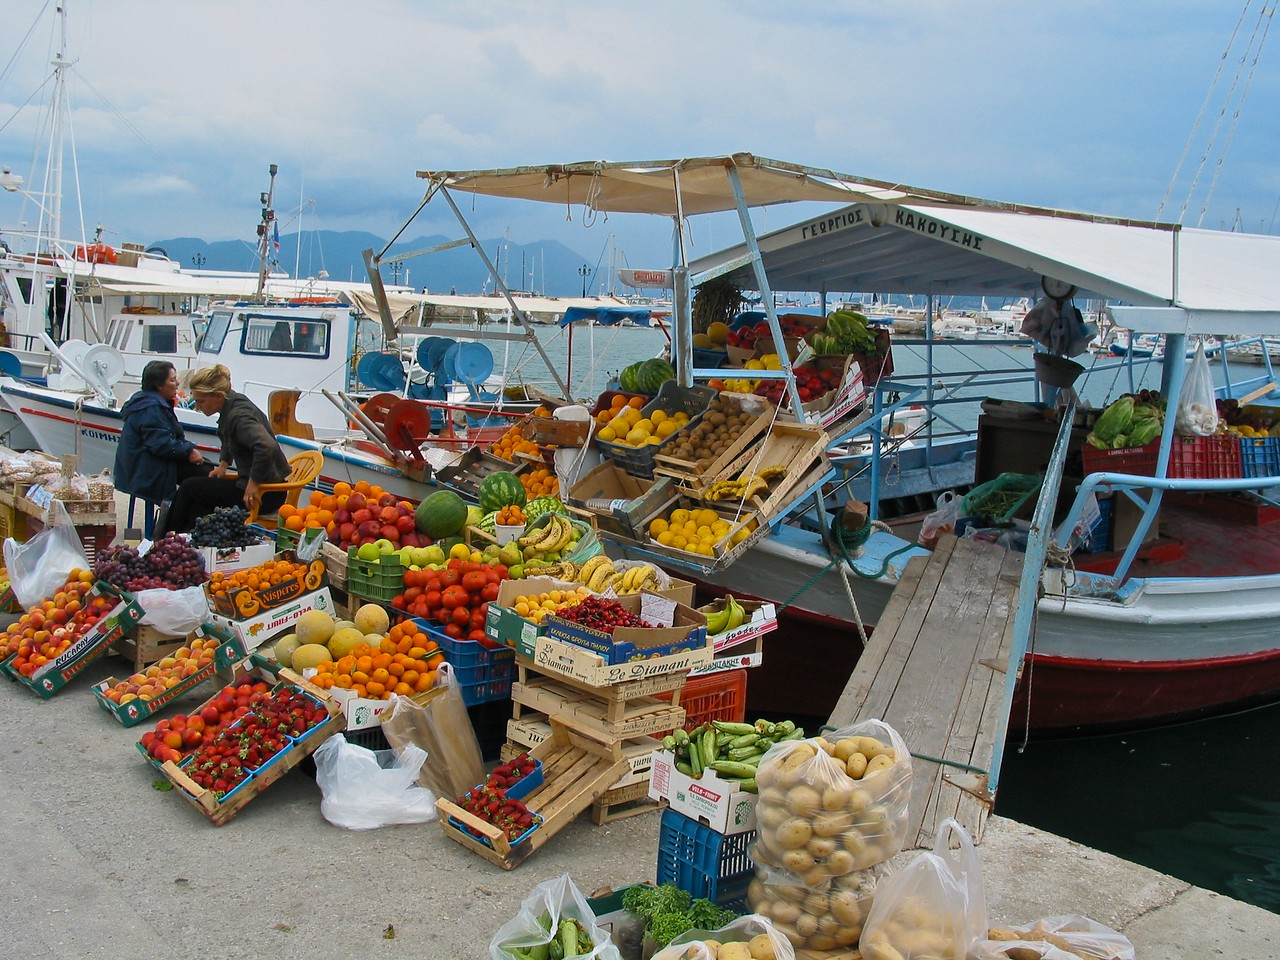 Along the seaside, many boats sell fresh fruits and veggies throughout the day.